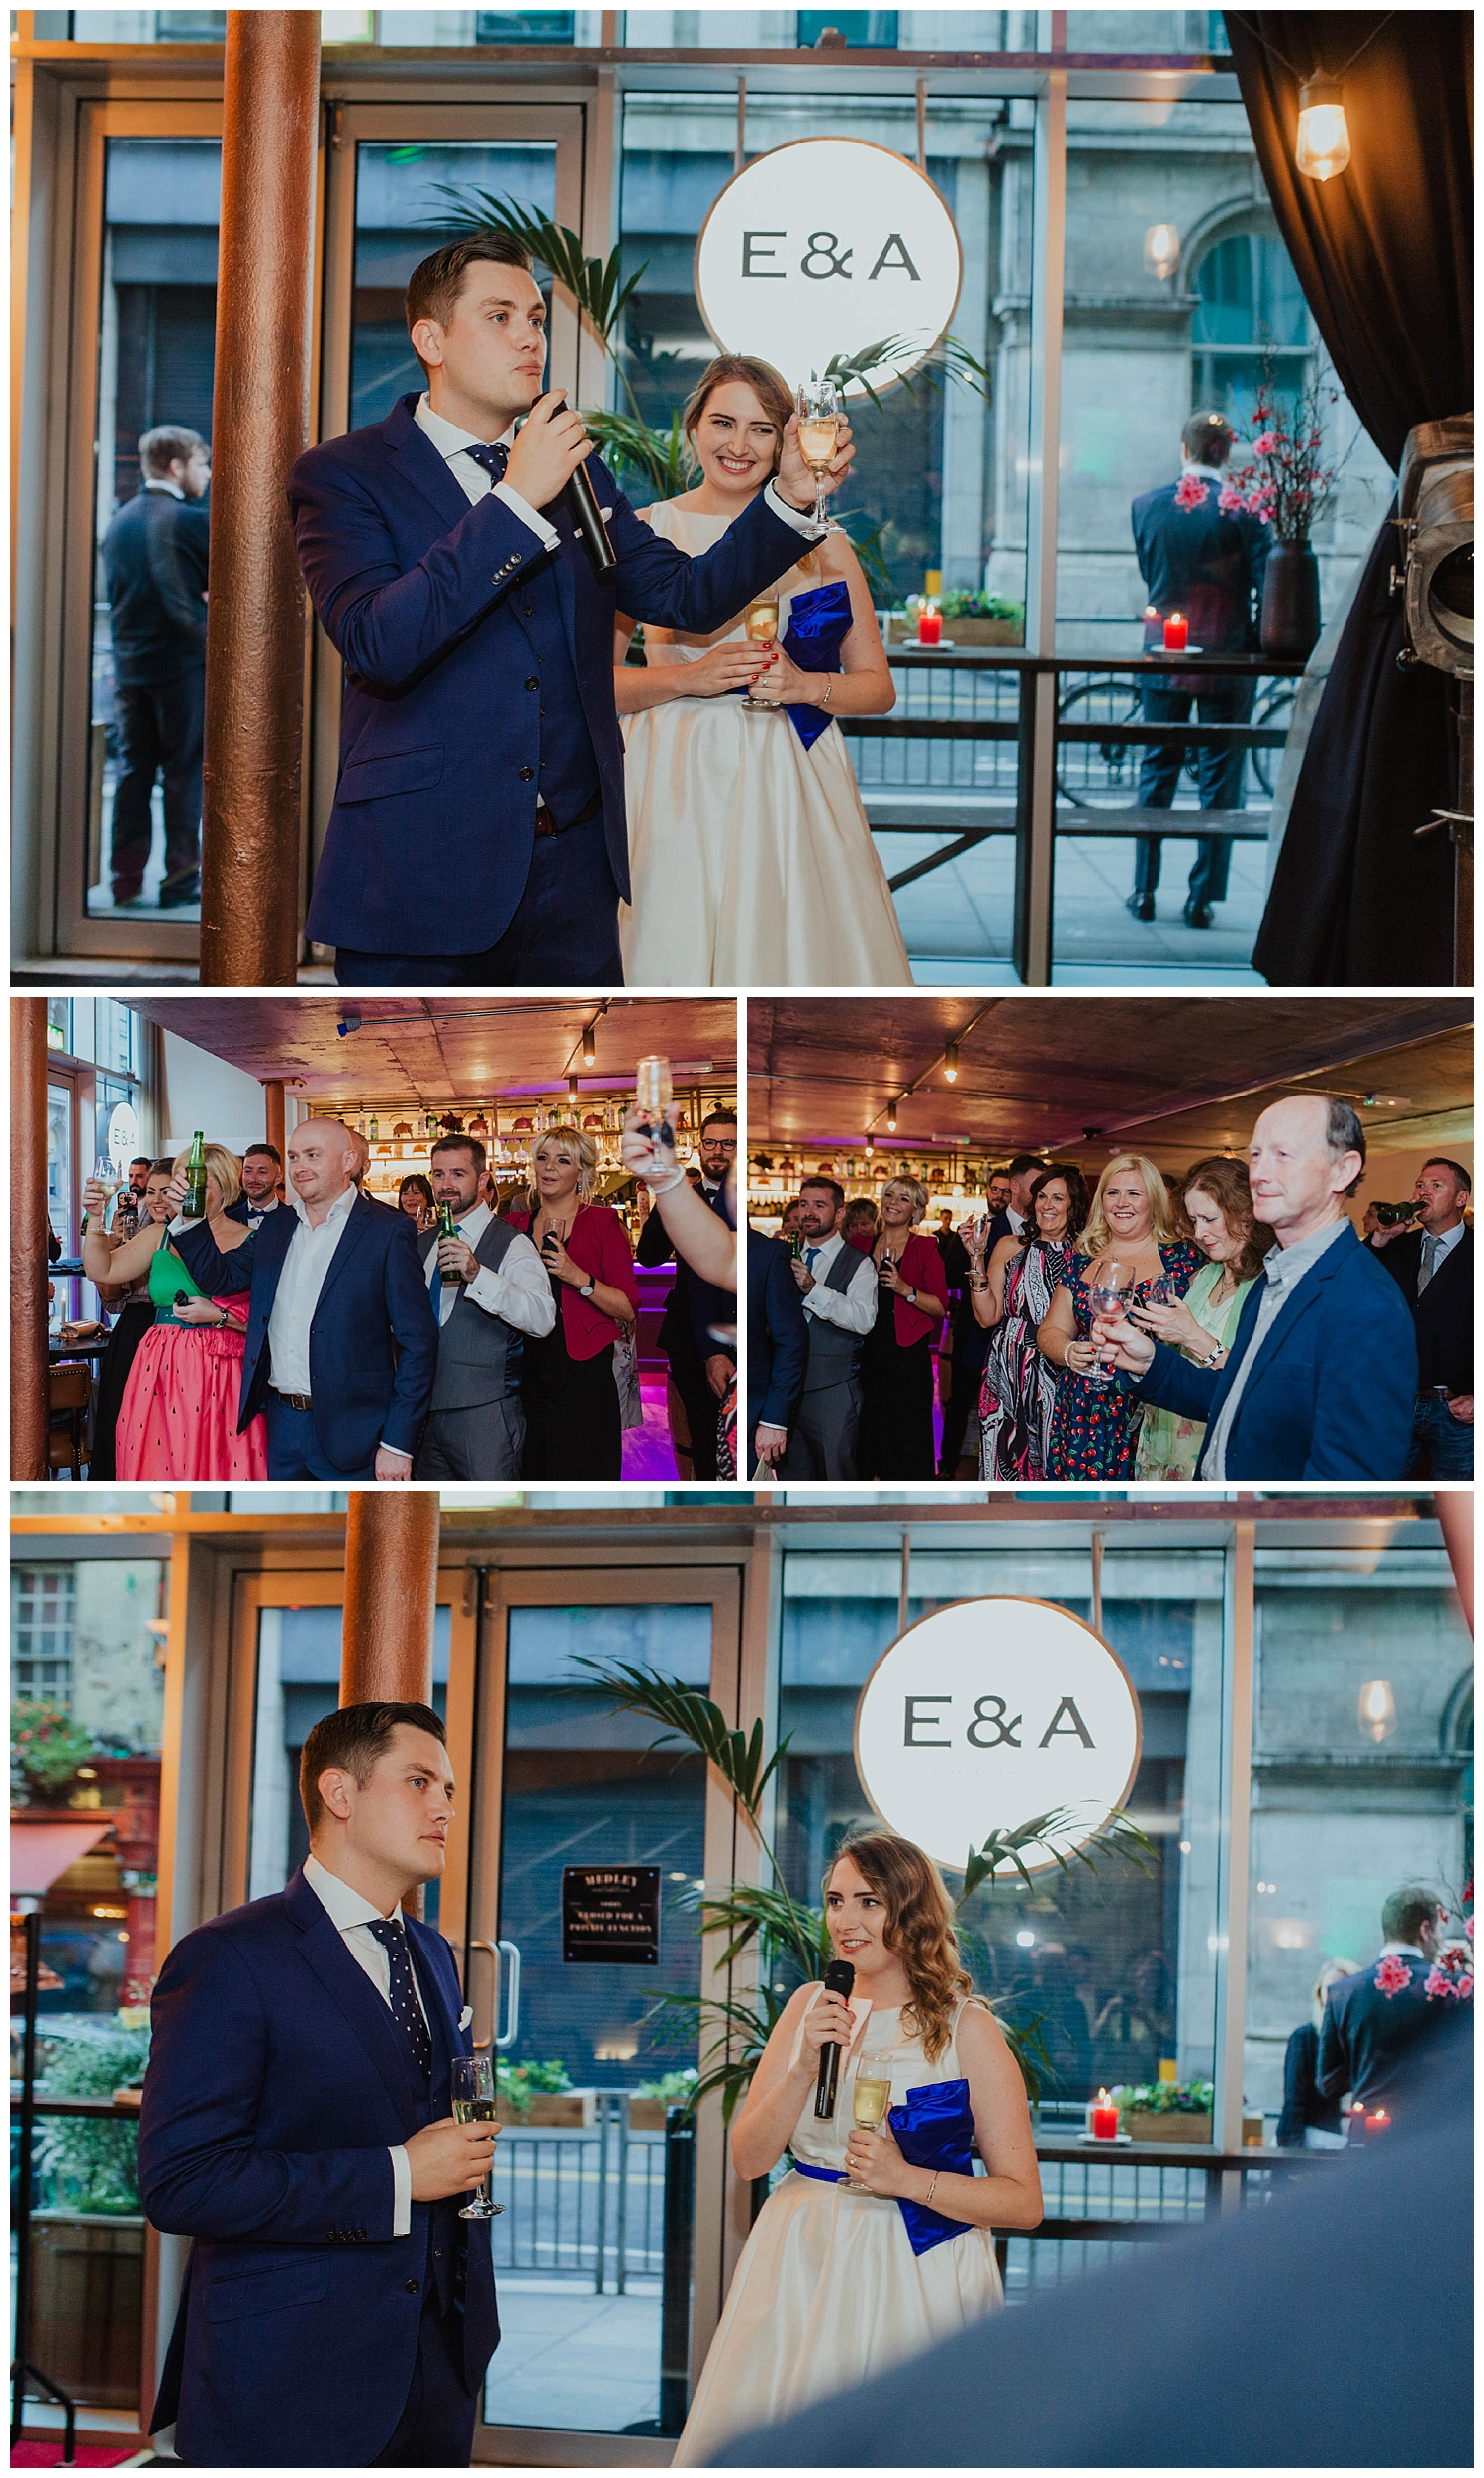 e&a_dublin_city_wedding_livia_figueiredo_712.jpg